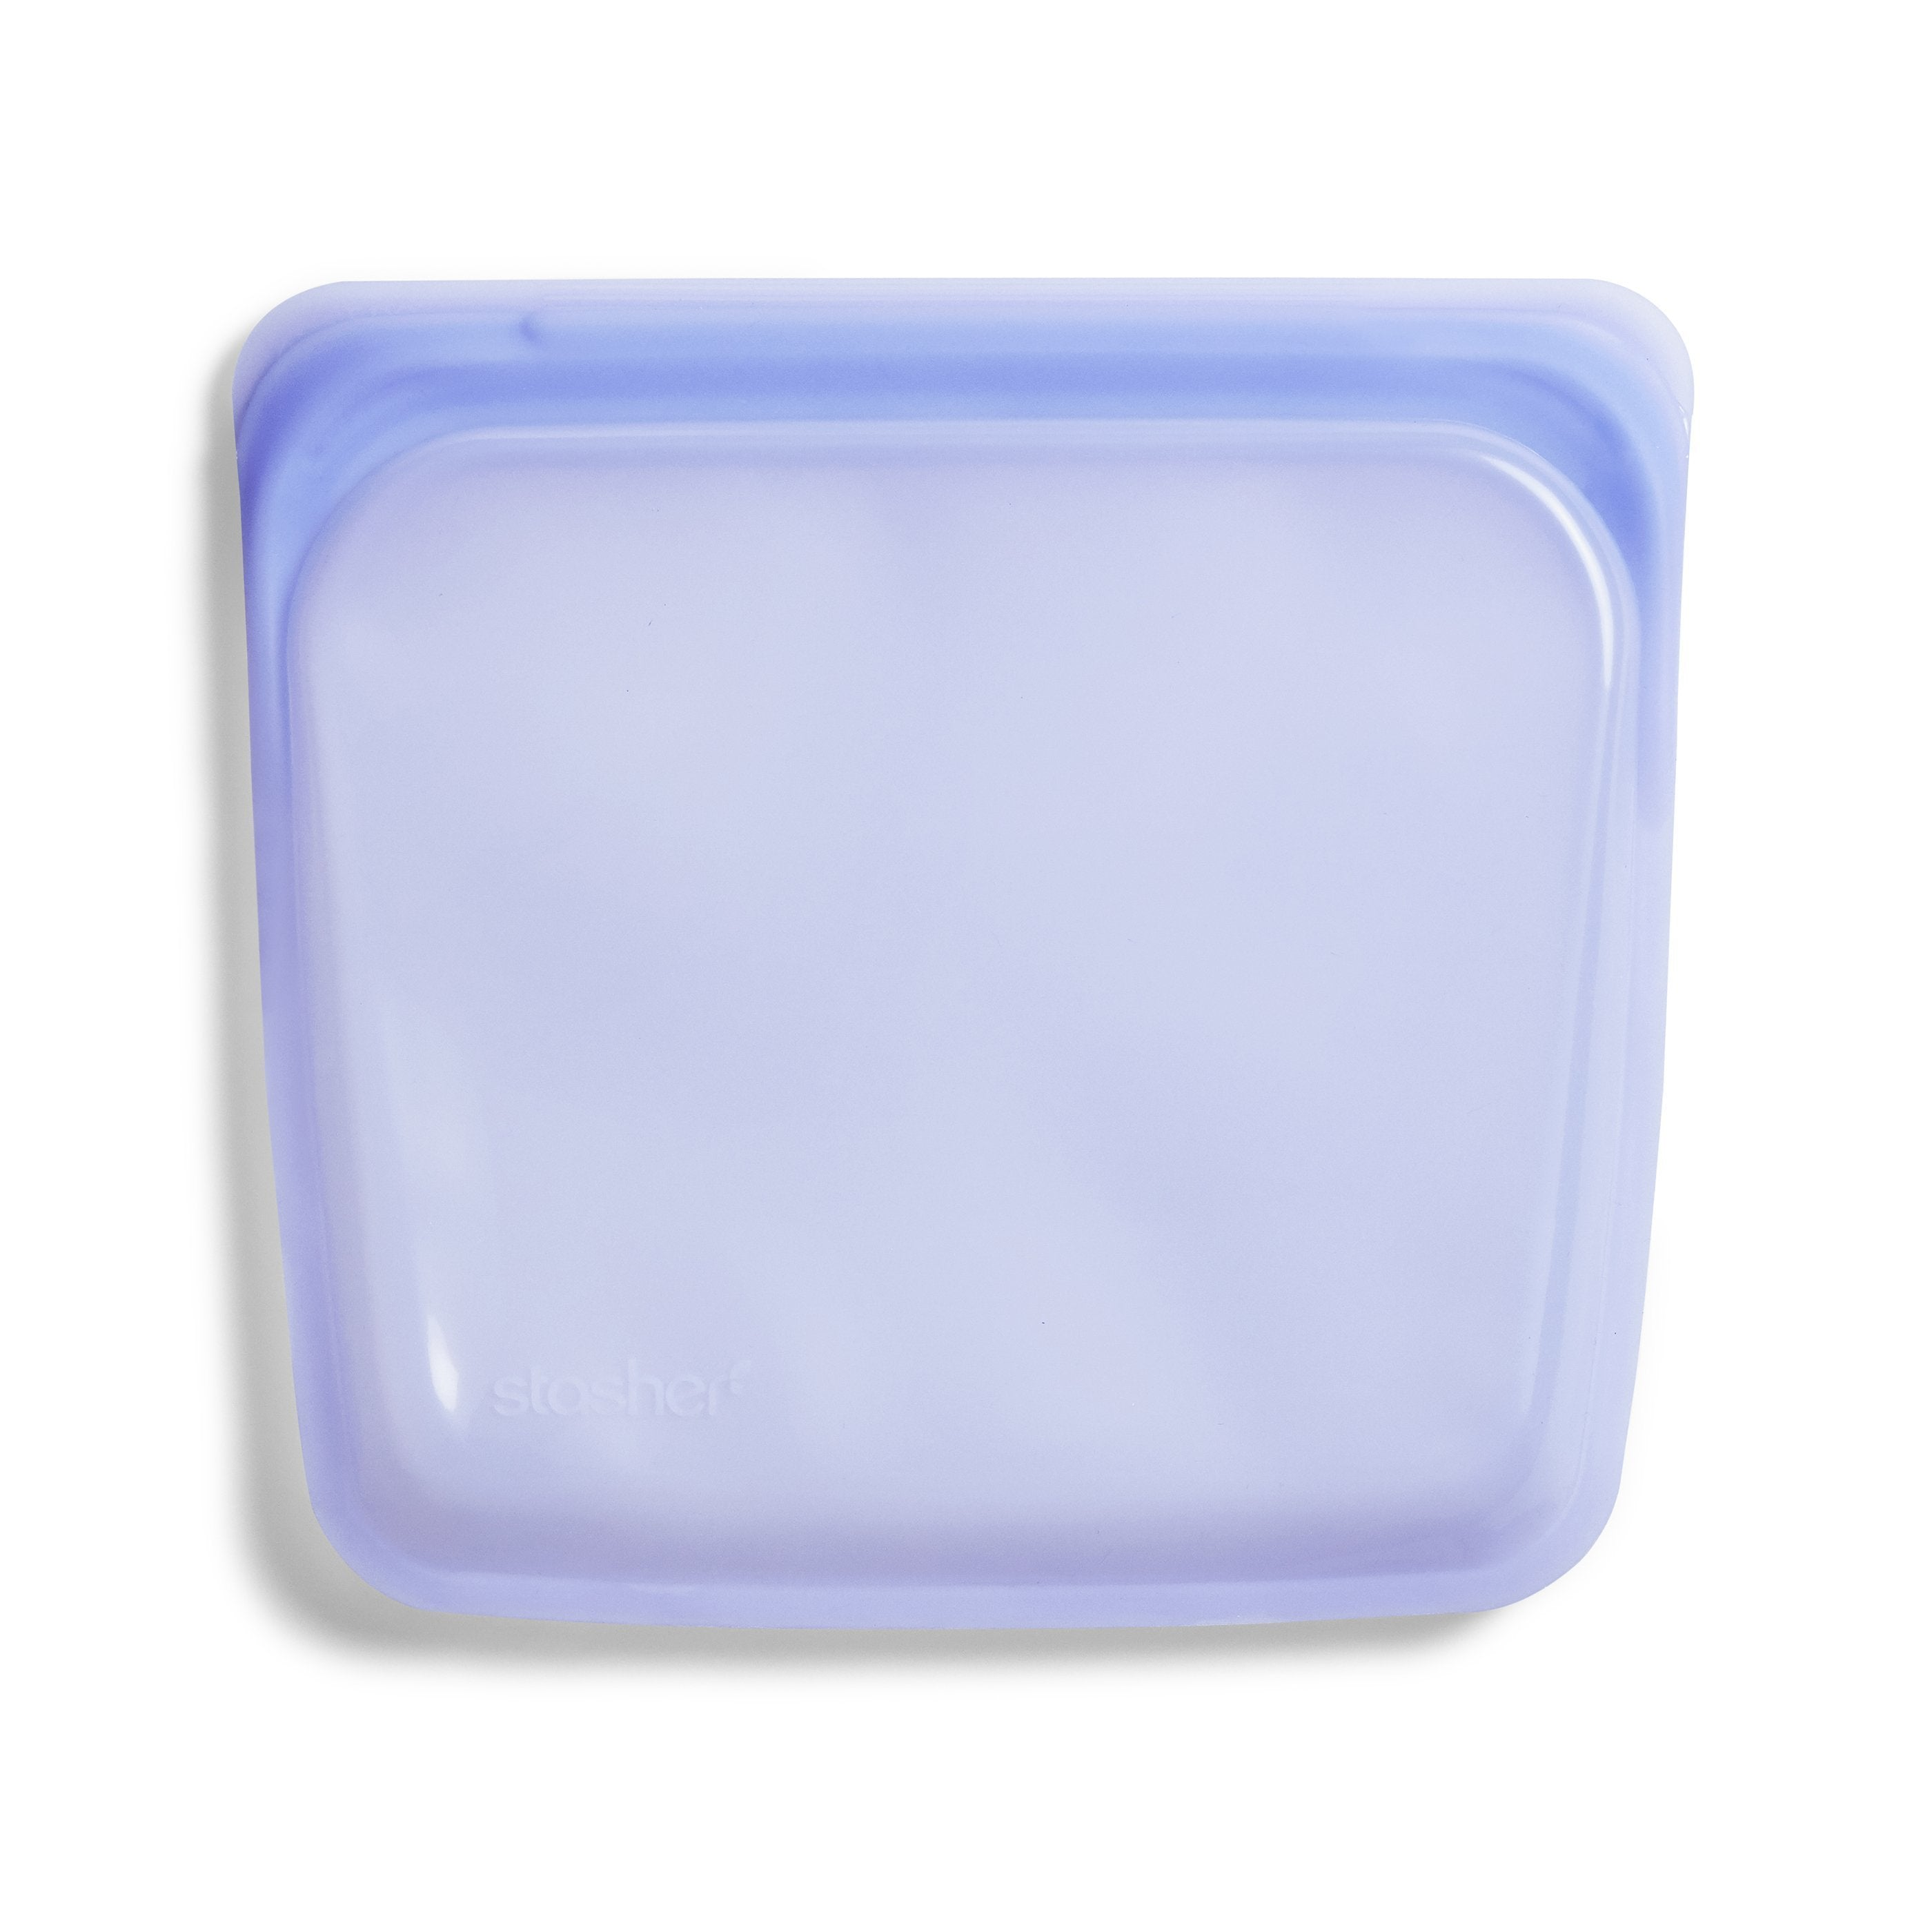 Amethyst Stasher Silicone Sandwich Bag - The Weekly Shop | Plastic Free Online Shop